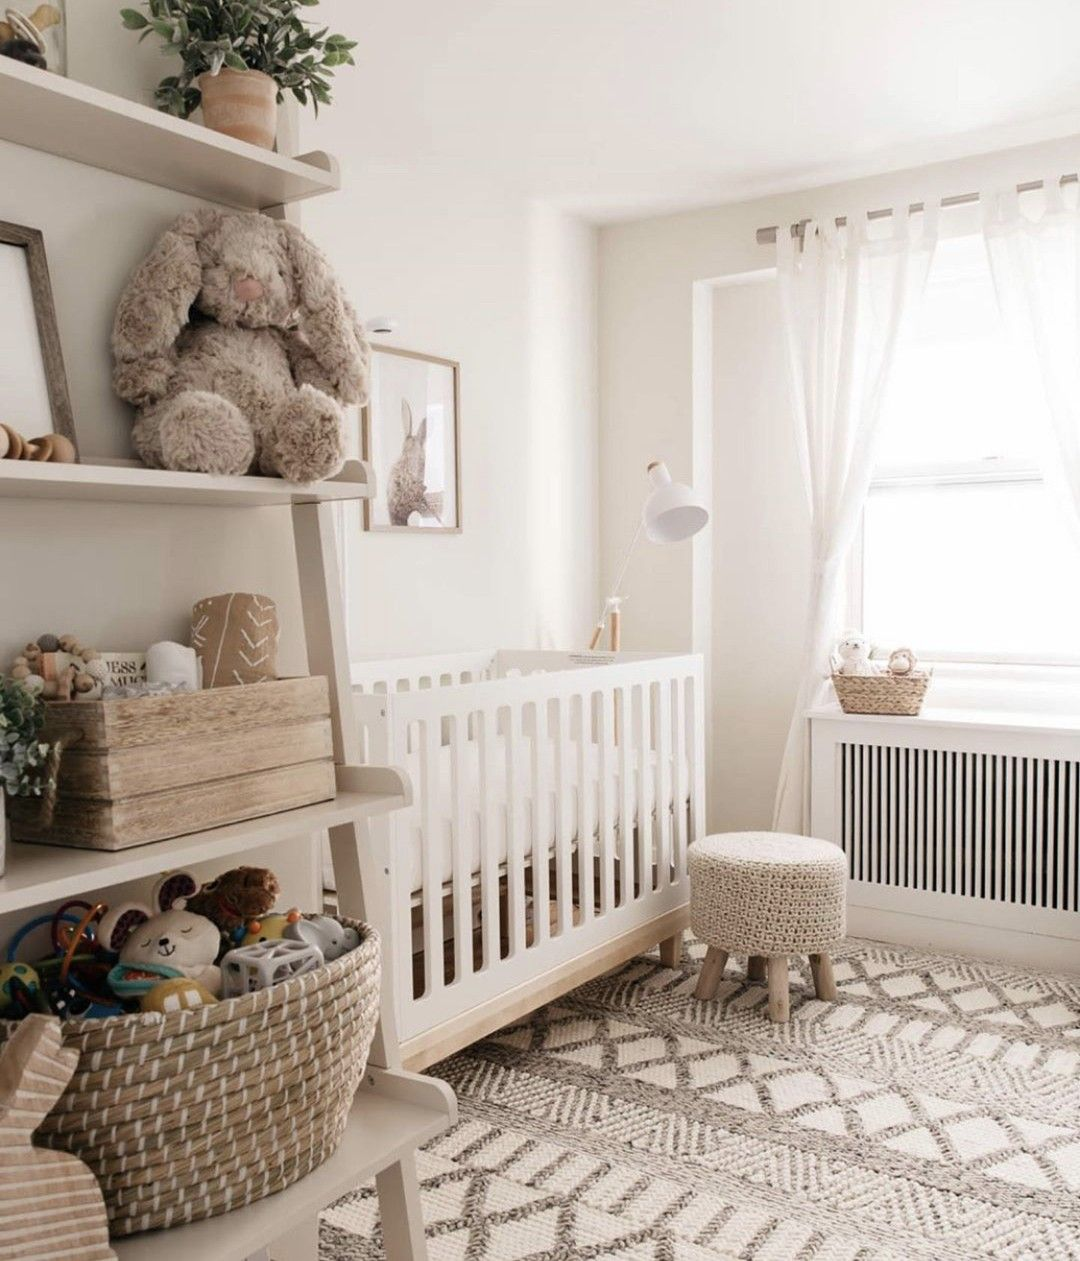 Can T Stop Staring At The Gender Neutral Nursery We Helped Design For Styledsnapshots If You Peek Clos Nursery Baby Room Baby Room Design Nursery Room Design Baby bedroom interior design